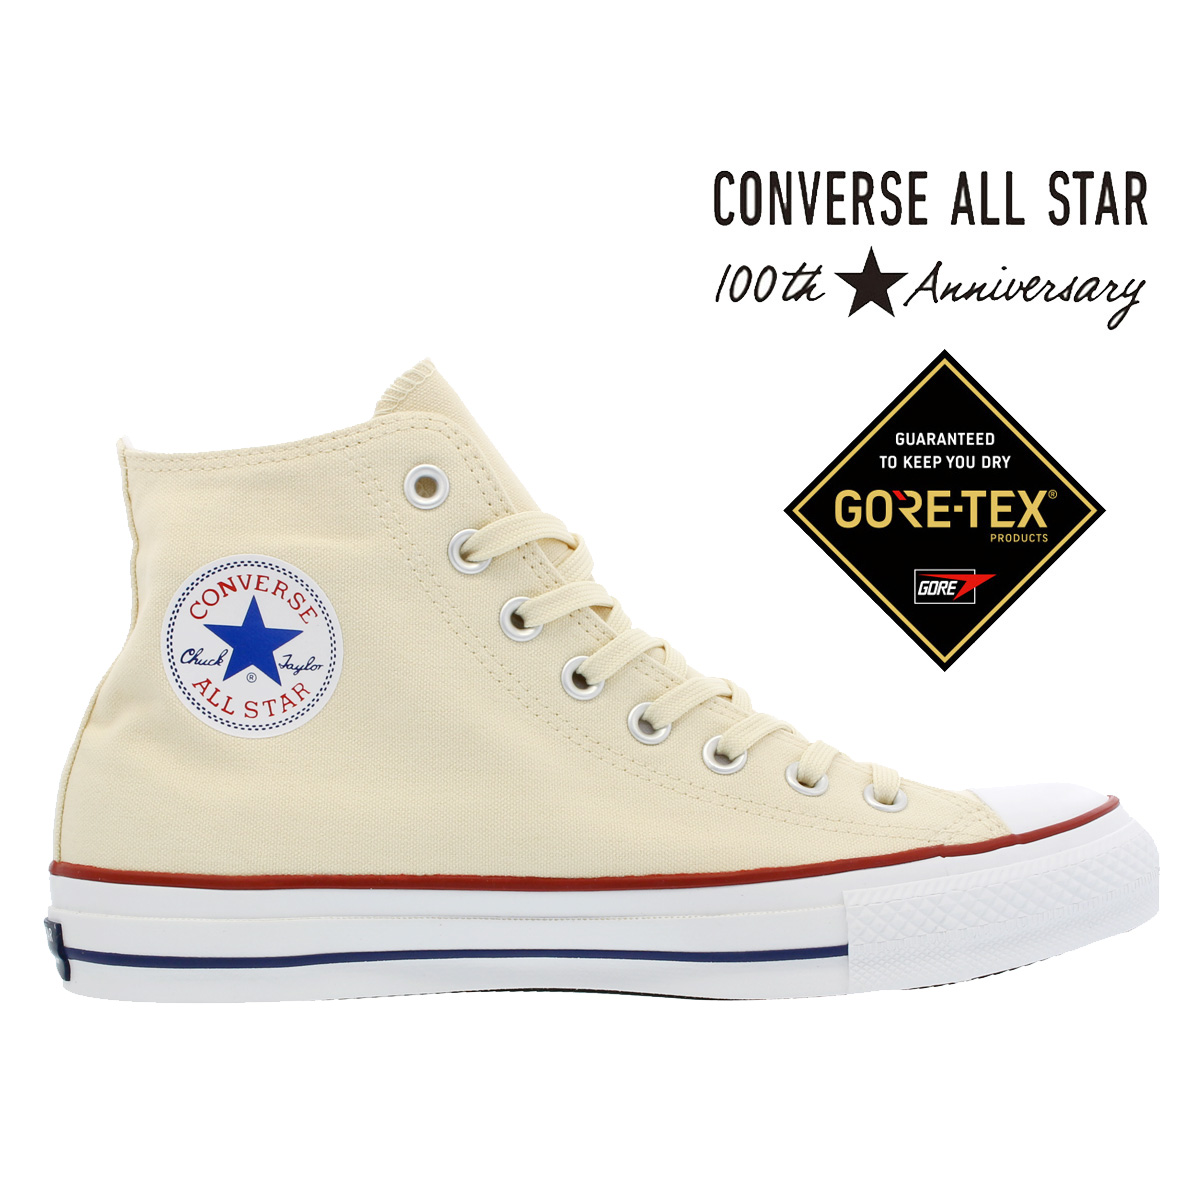 CONVERSE ALL STAR 100 GORE-TEX HI 【100周年】 【100th ANNIVERSARY】 コンバース オールスター 100 ゴア テックス HI NATURAL WHITE